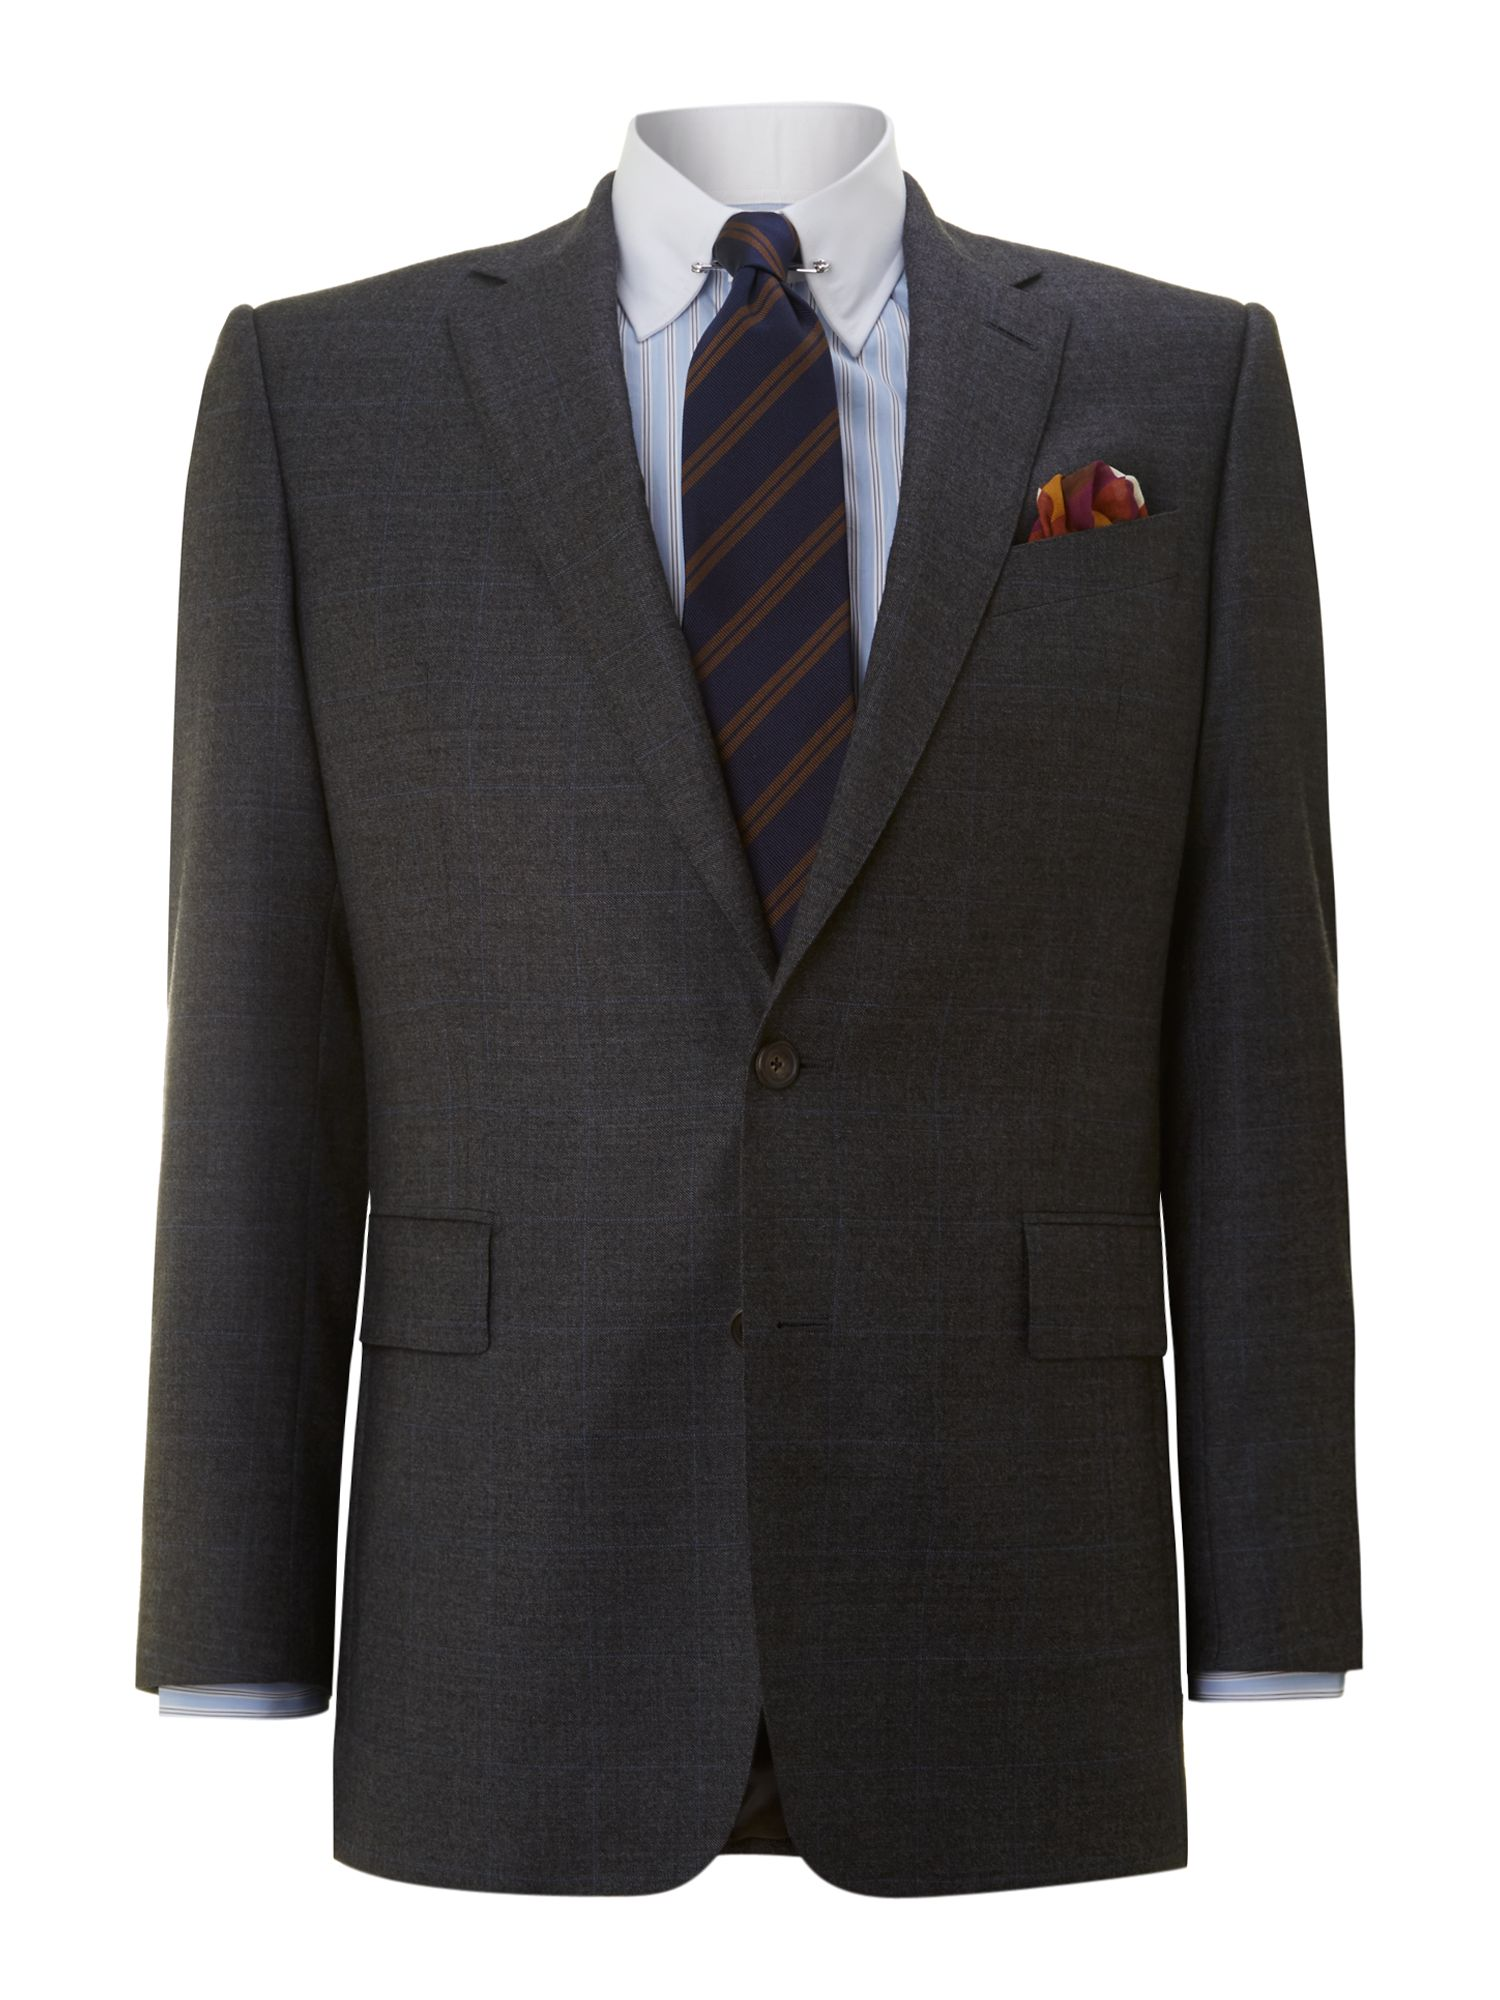 Albermarle glen check suit